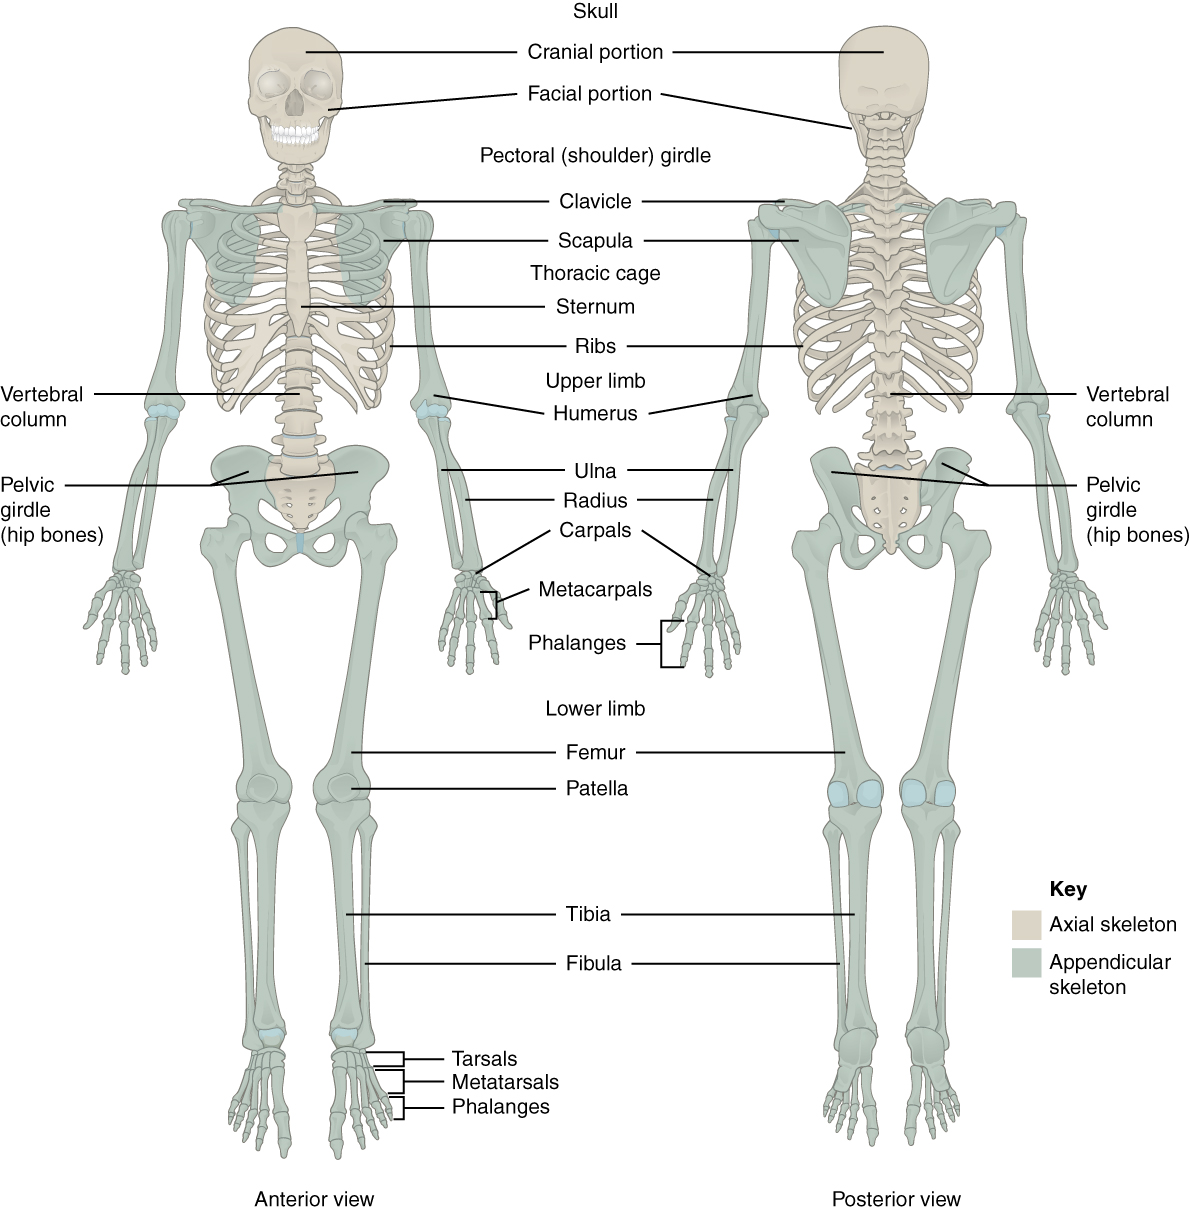 Worksheets Appendicular Skeleton Worksheet introduction to the appendicular skeleton anatomy and physiology i this figure shows human left panel anterior view and